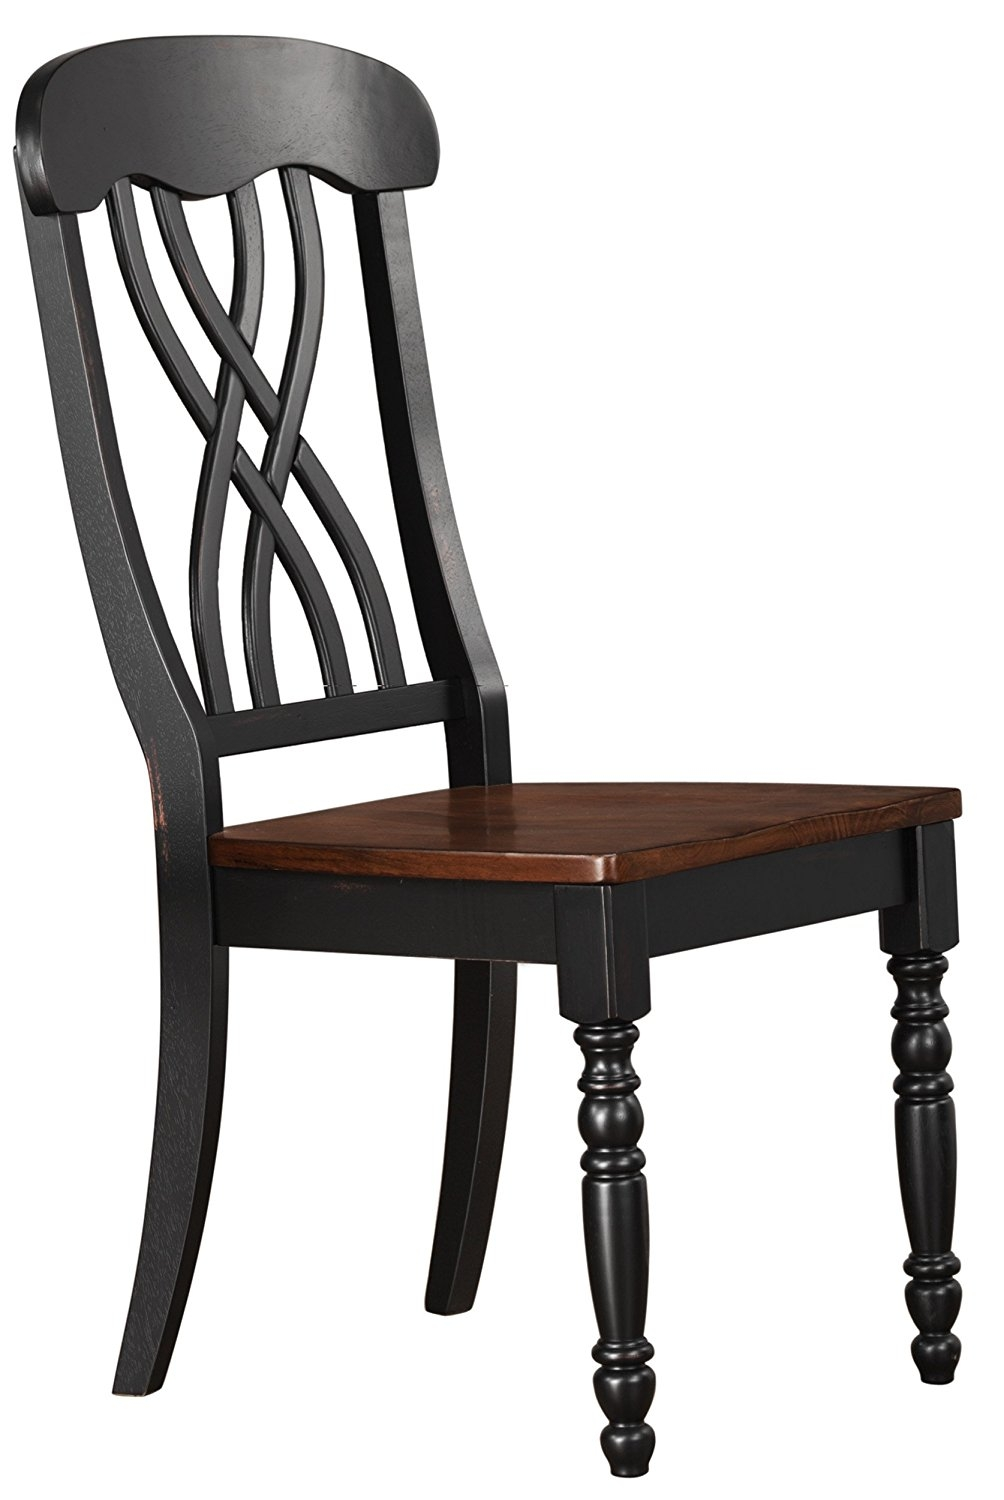 Homelegance Ohana 2 Piece Pack Causal Dining Chairs, Black & Cherry by Homelegance